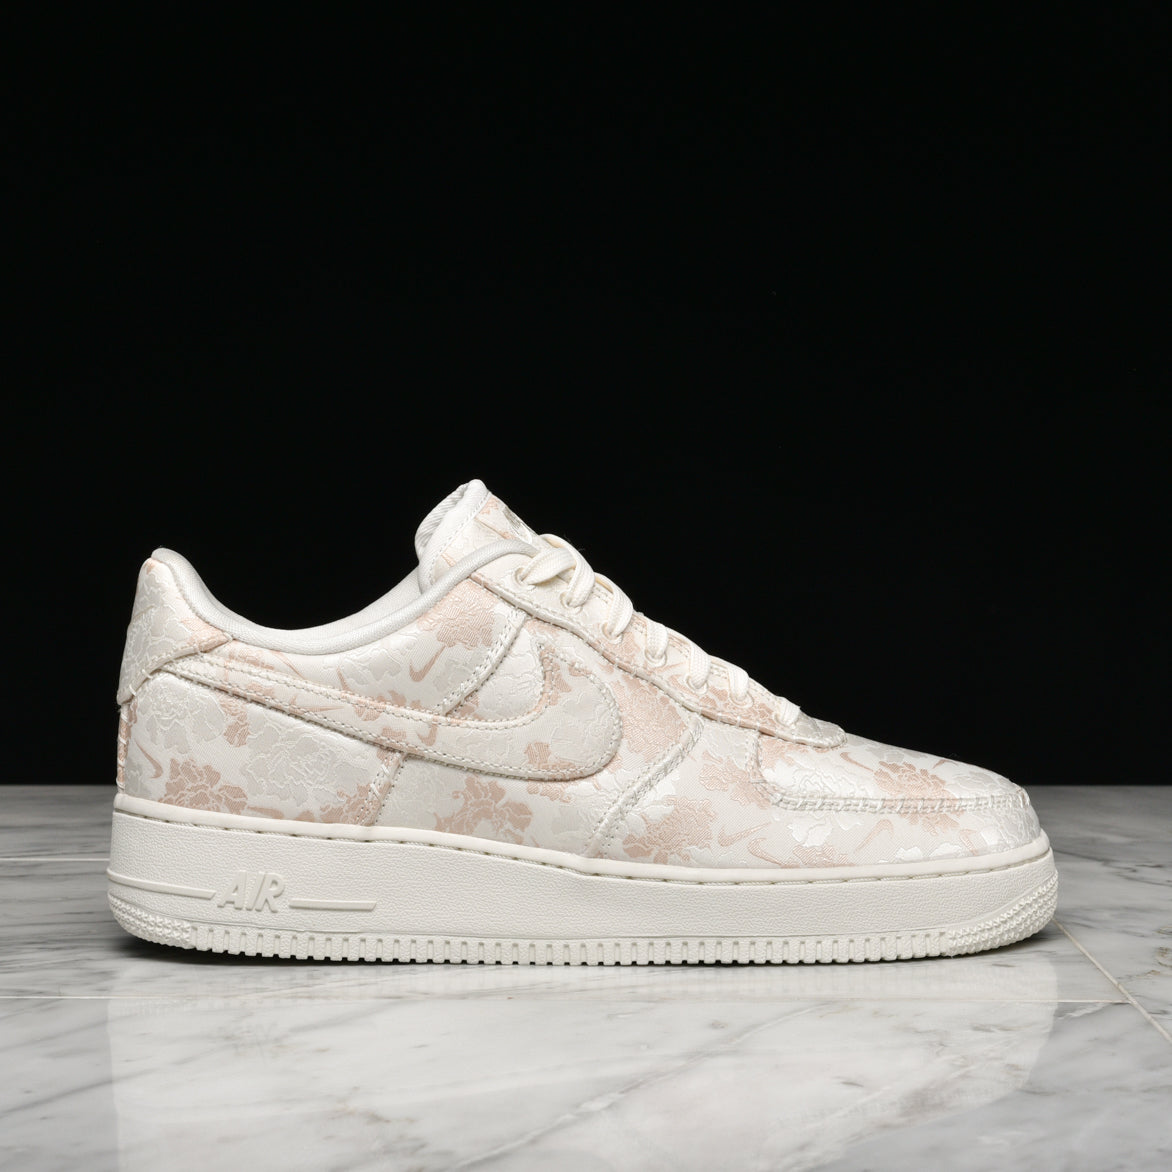 meilleures baskets 6240a 152df AIR FORCE 1 07 PRM 3